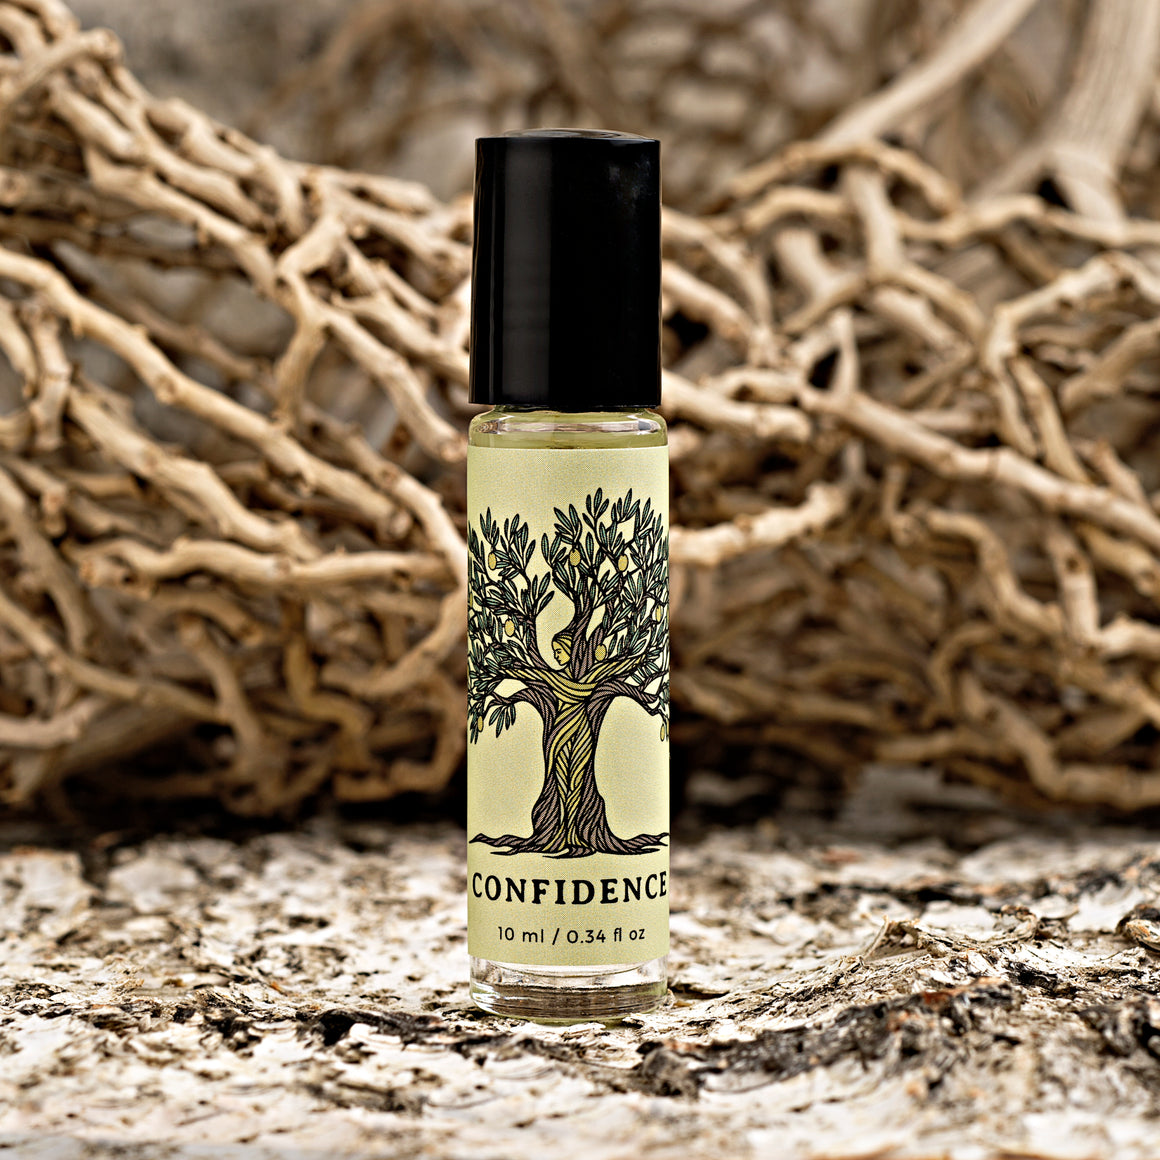 Tree Gift 'Confidence' Alchemy Oil